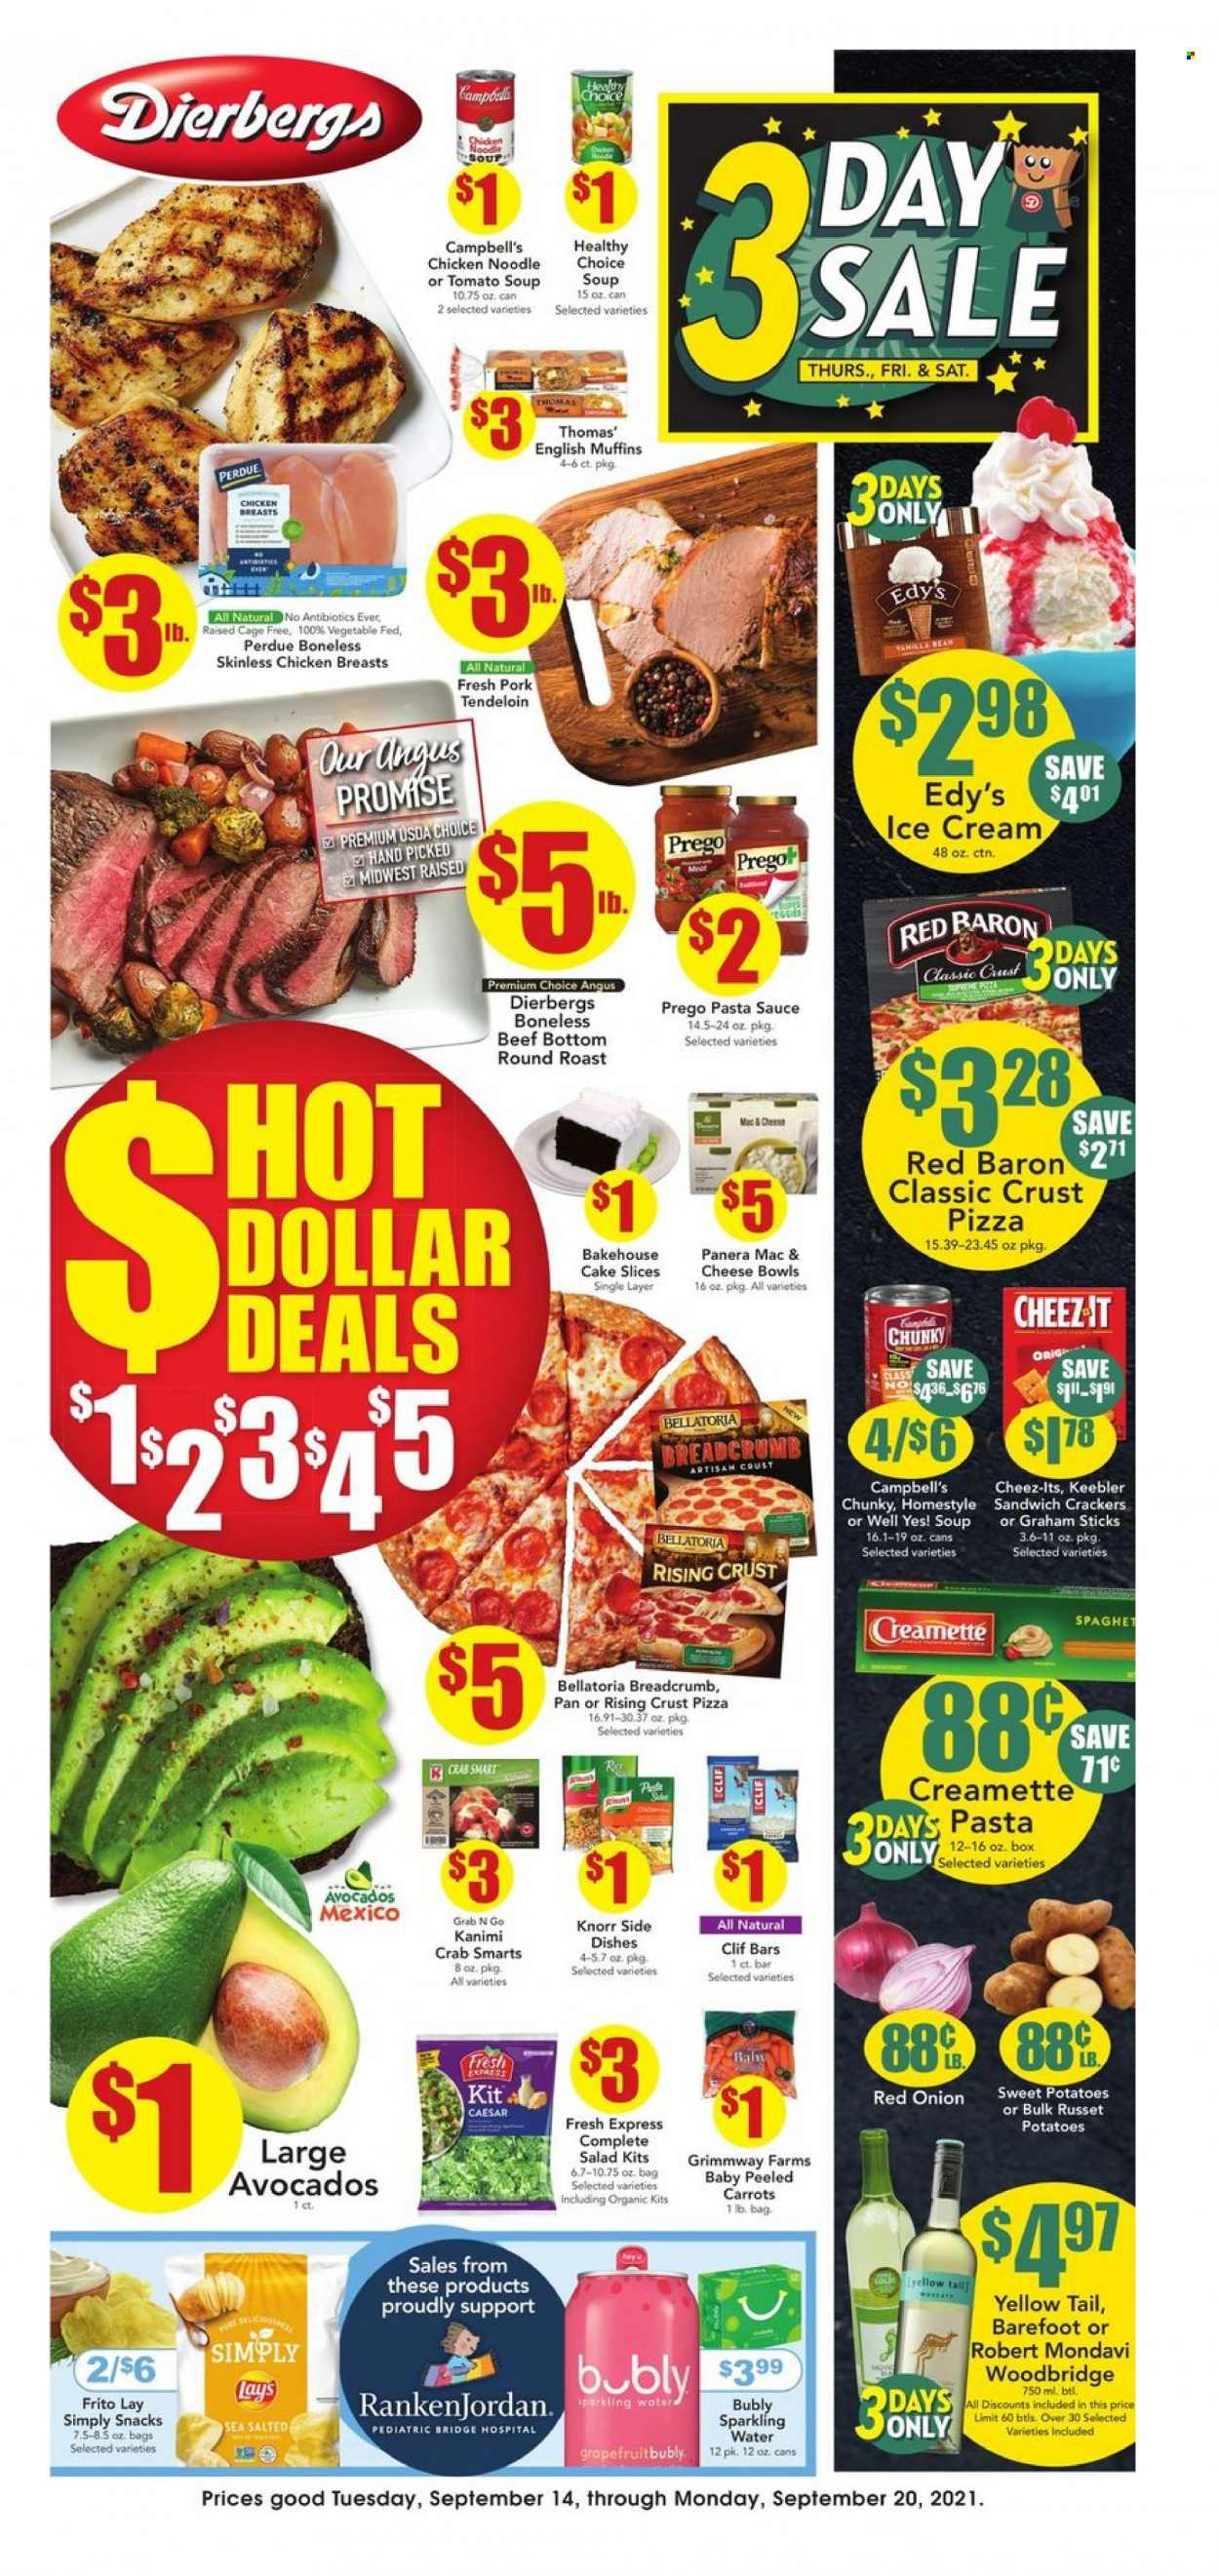 Dierbergs Ad from september 14 to 20 2021 - Page 1